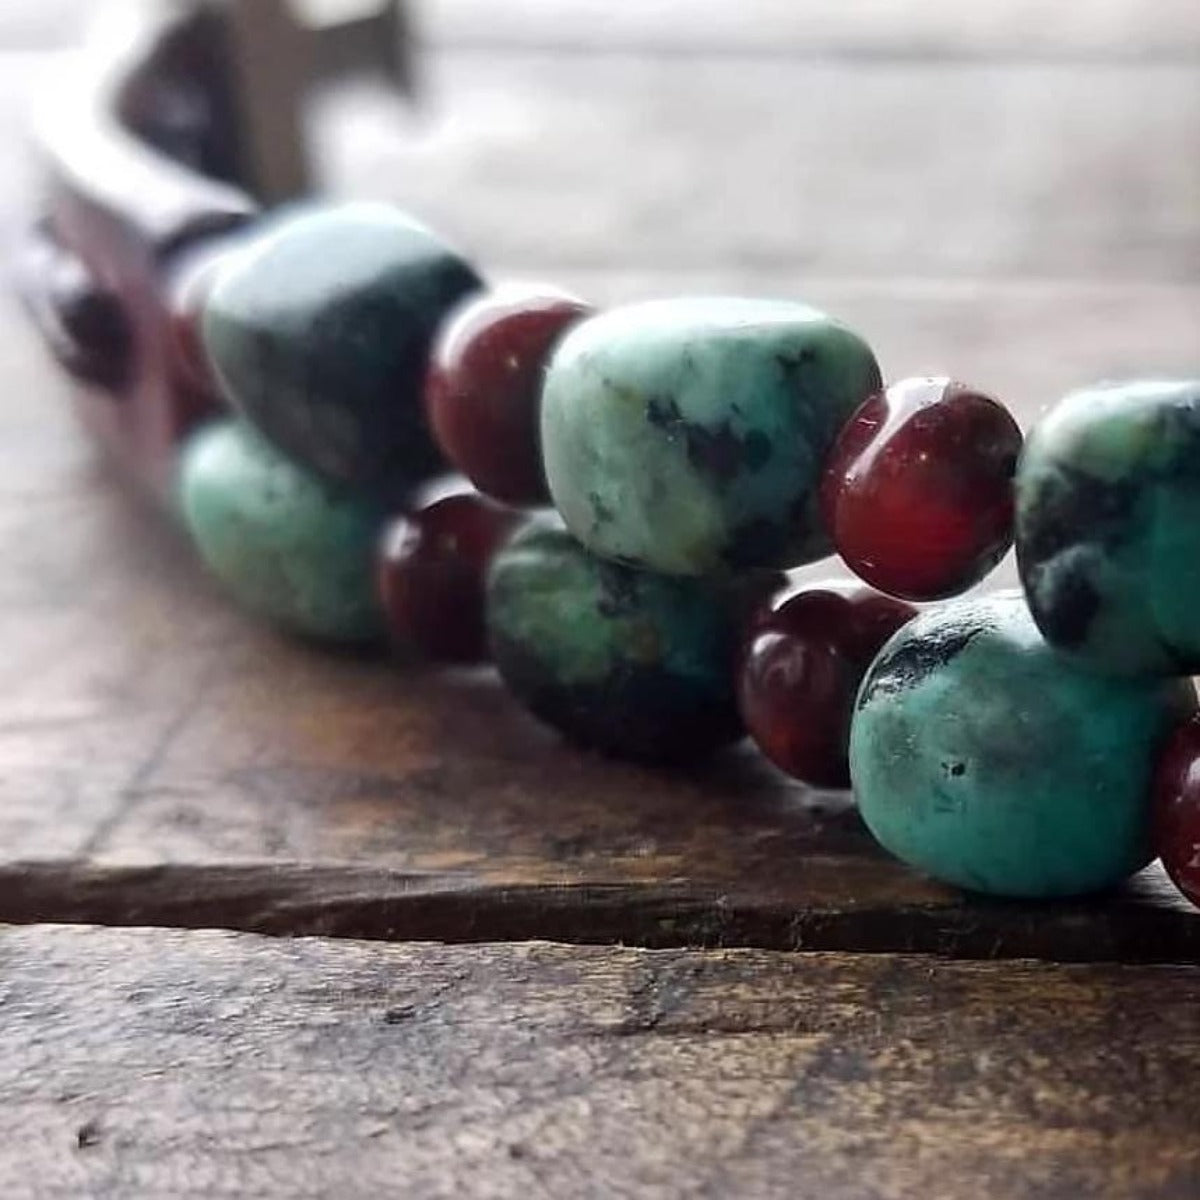 Kuende Leather Bracelet | African Turquoise & Red Carnelian Stone Braided Bracelet - S S1177